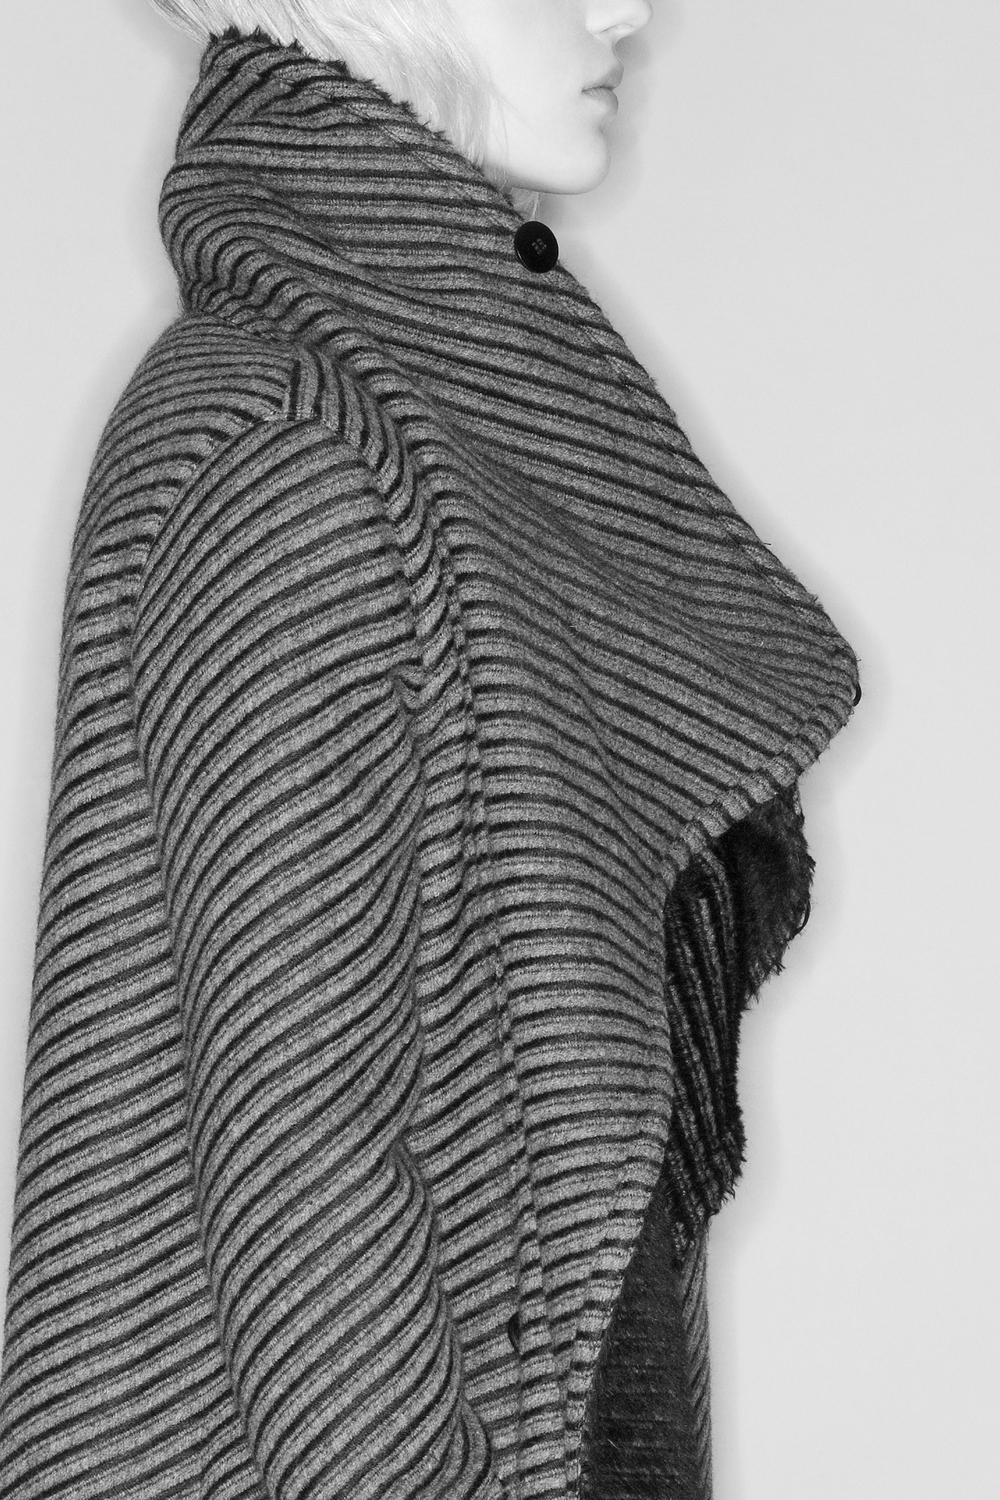 SSS-Web_CLOSE_UP_COAT_BW_F_08.jpg